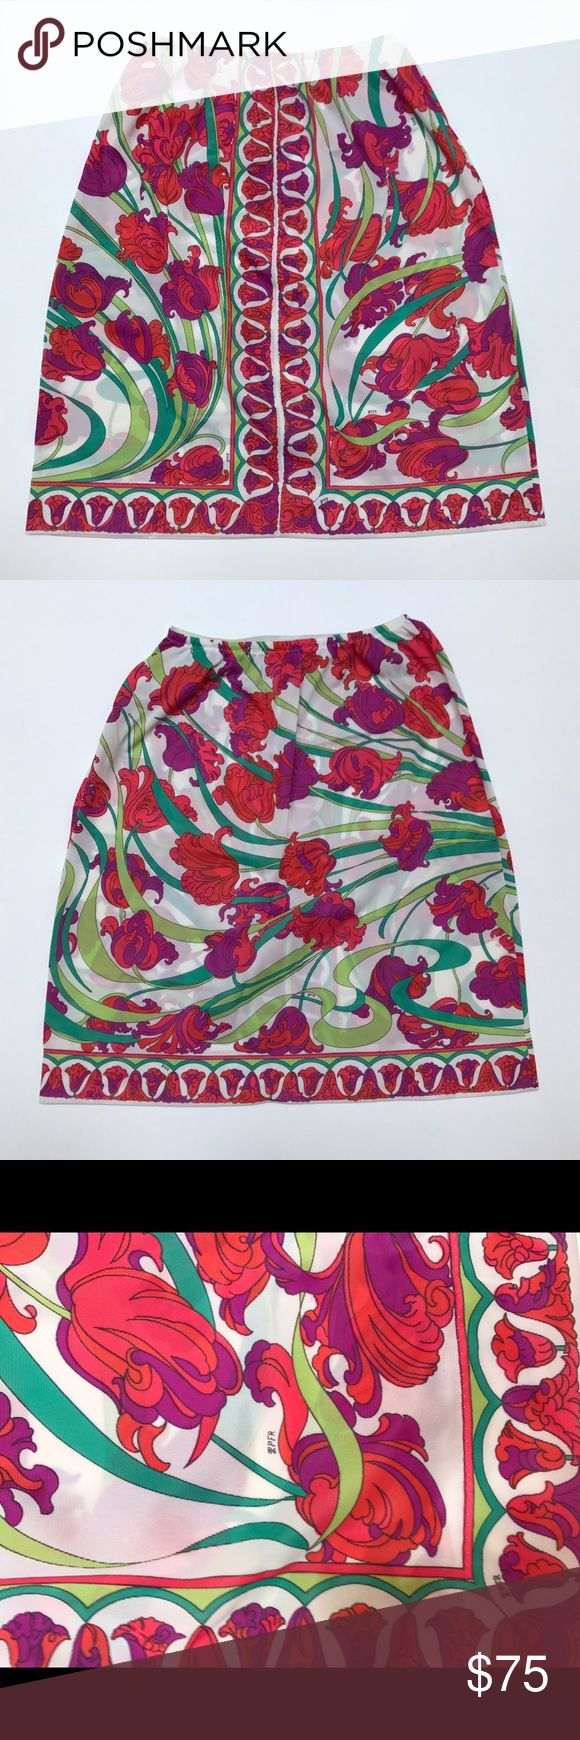 Vintage Emilio Pucci Iris Floral Half Slip Skirt Vintage 1960s Emilio Pucci for Formfit Rogers half slip that looks great as a skirt.  Elastic waist.  Iris floral print in red, purple and green. Waist: 22-34.  Length: 22 Emilio Pucci Skirts